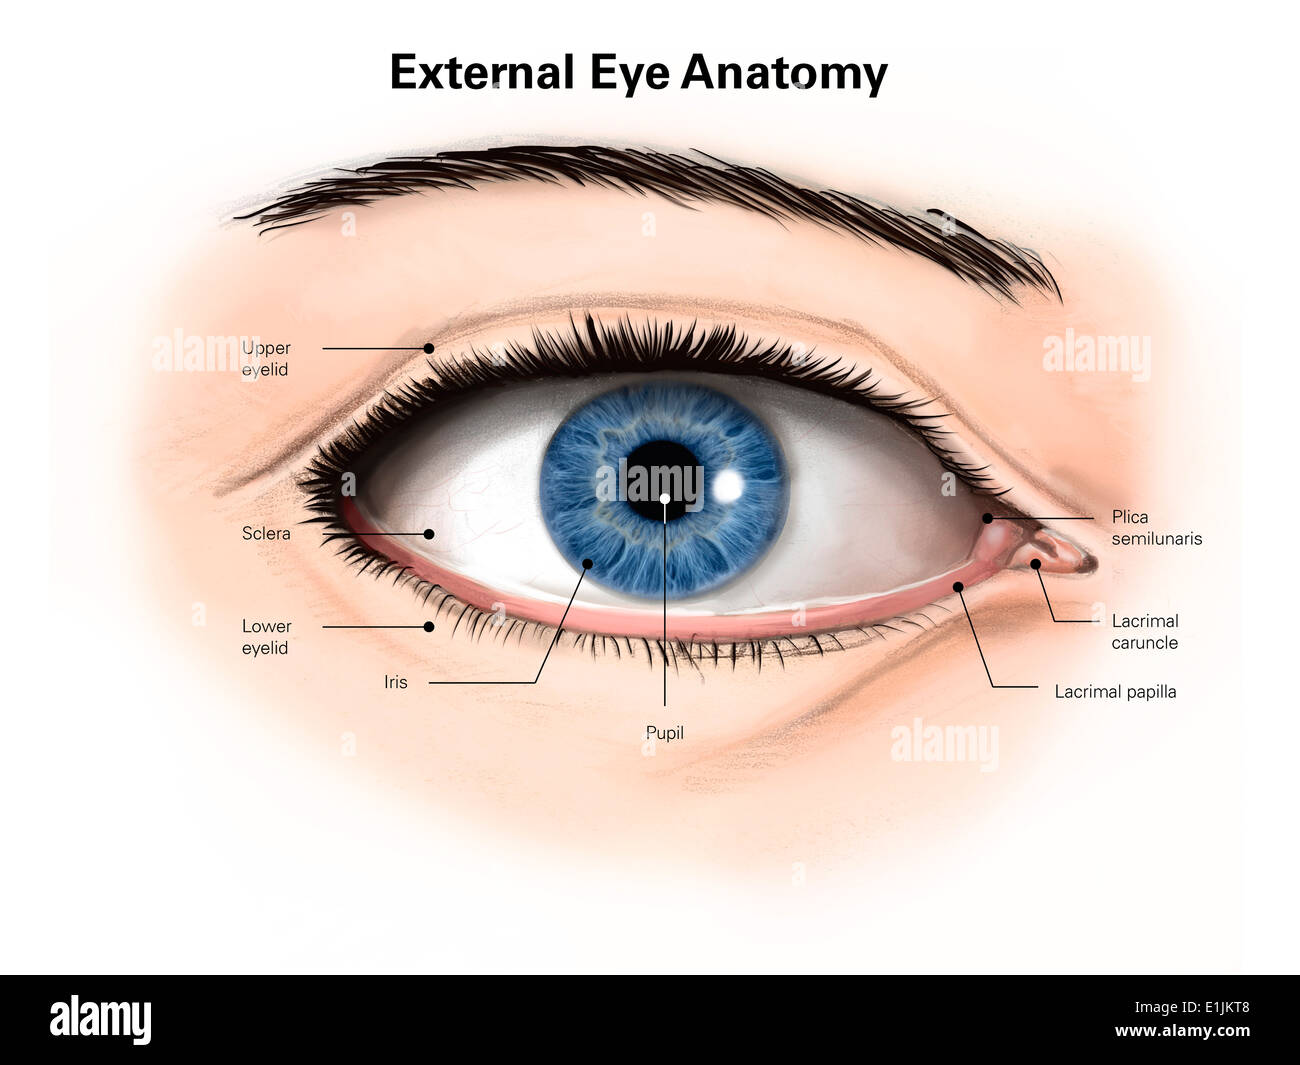 External Anatomy Of The Human Eye With Labels Stock Photo 69866840